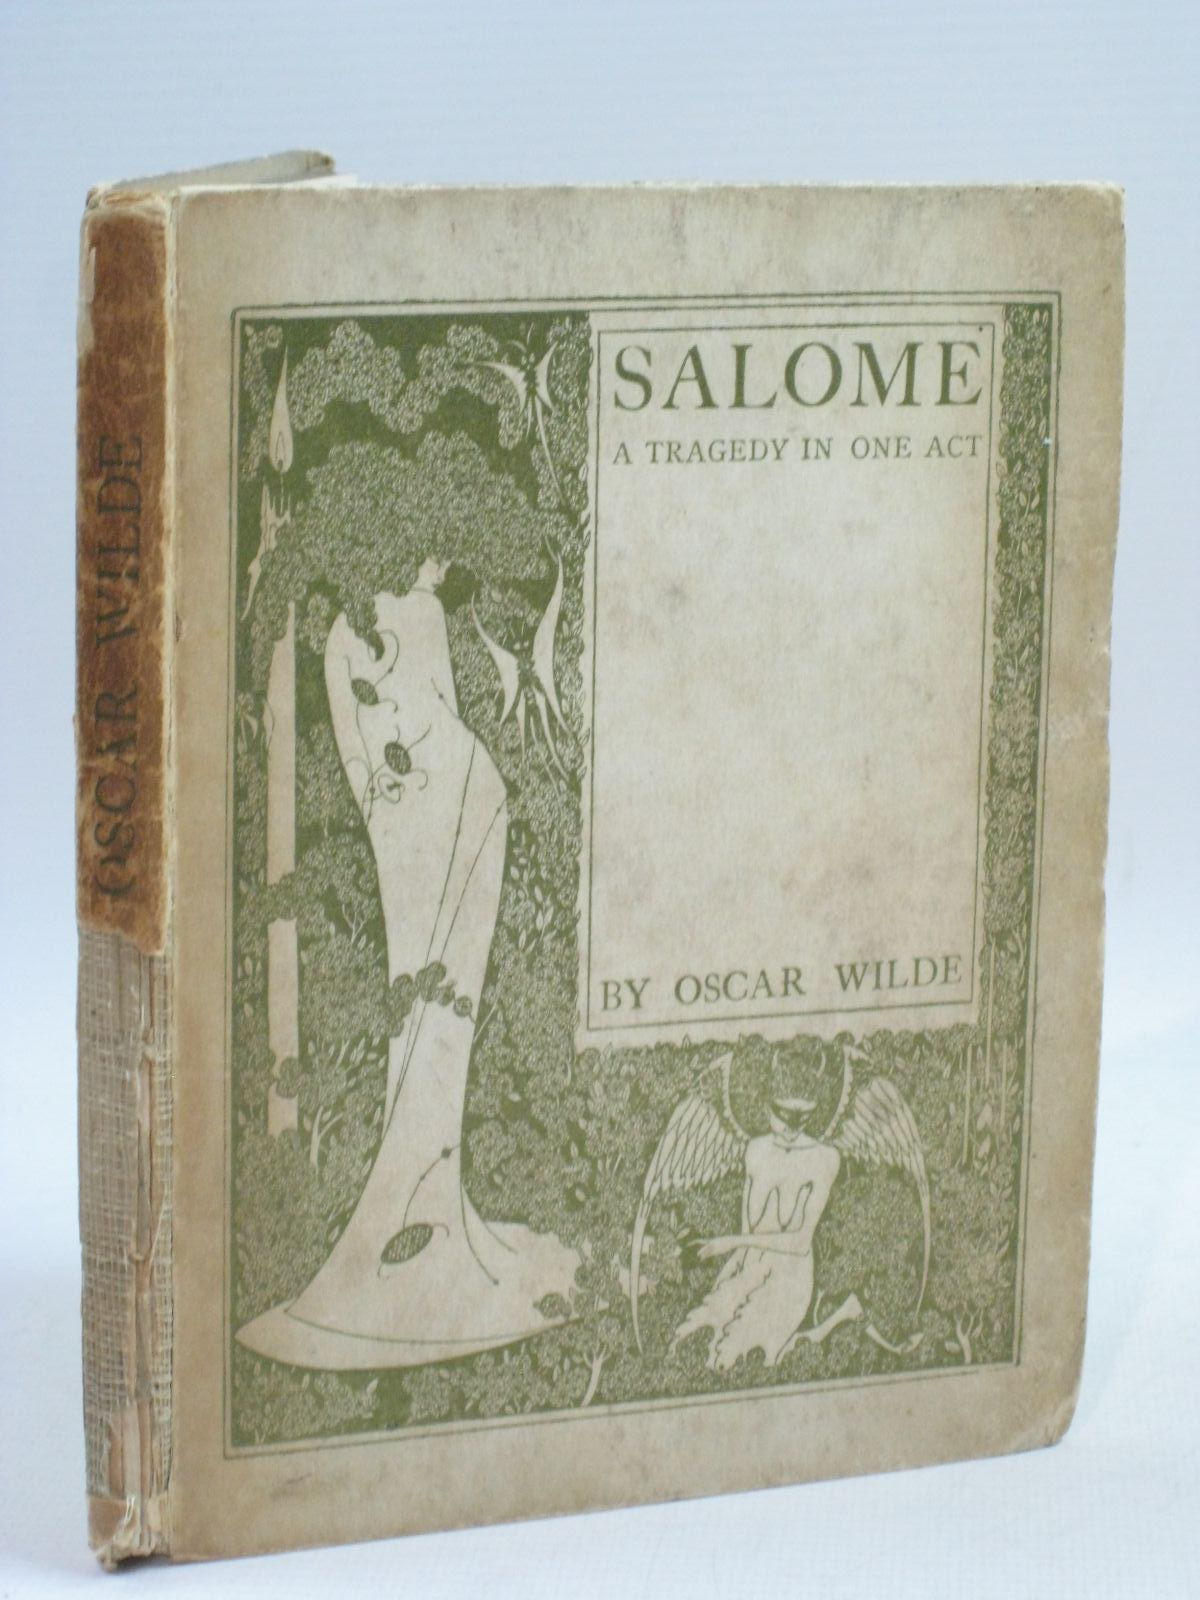 an analysis of the play salom by oscar wilde Oscar wilde the original 1891 version of the play was in french three years later an english translation was published the play tells in one act the biblical story of salome, stepdaughter of the tetrarch herod antipas, who.